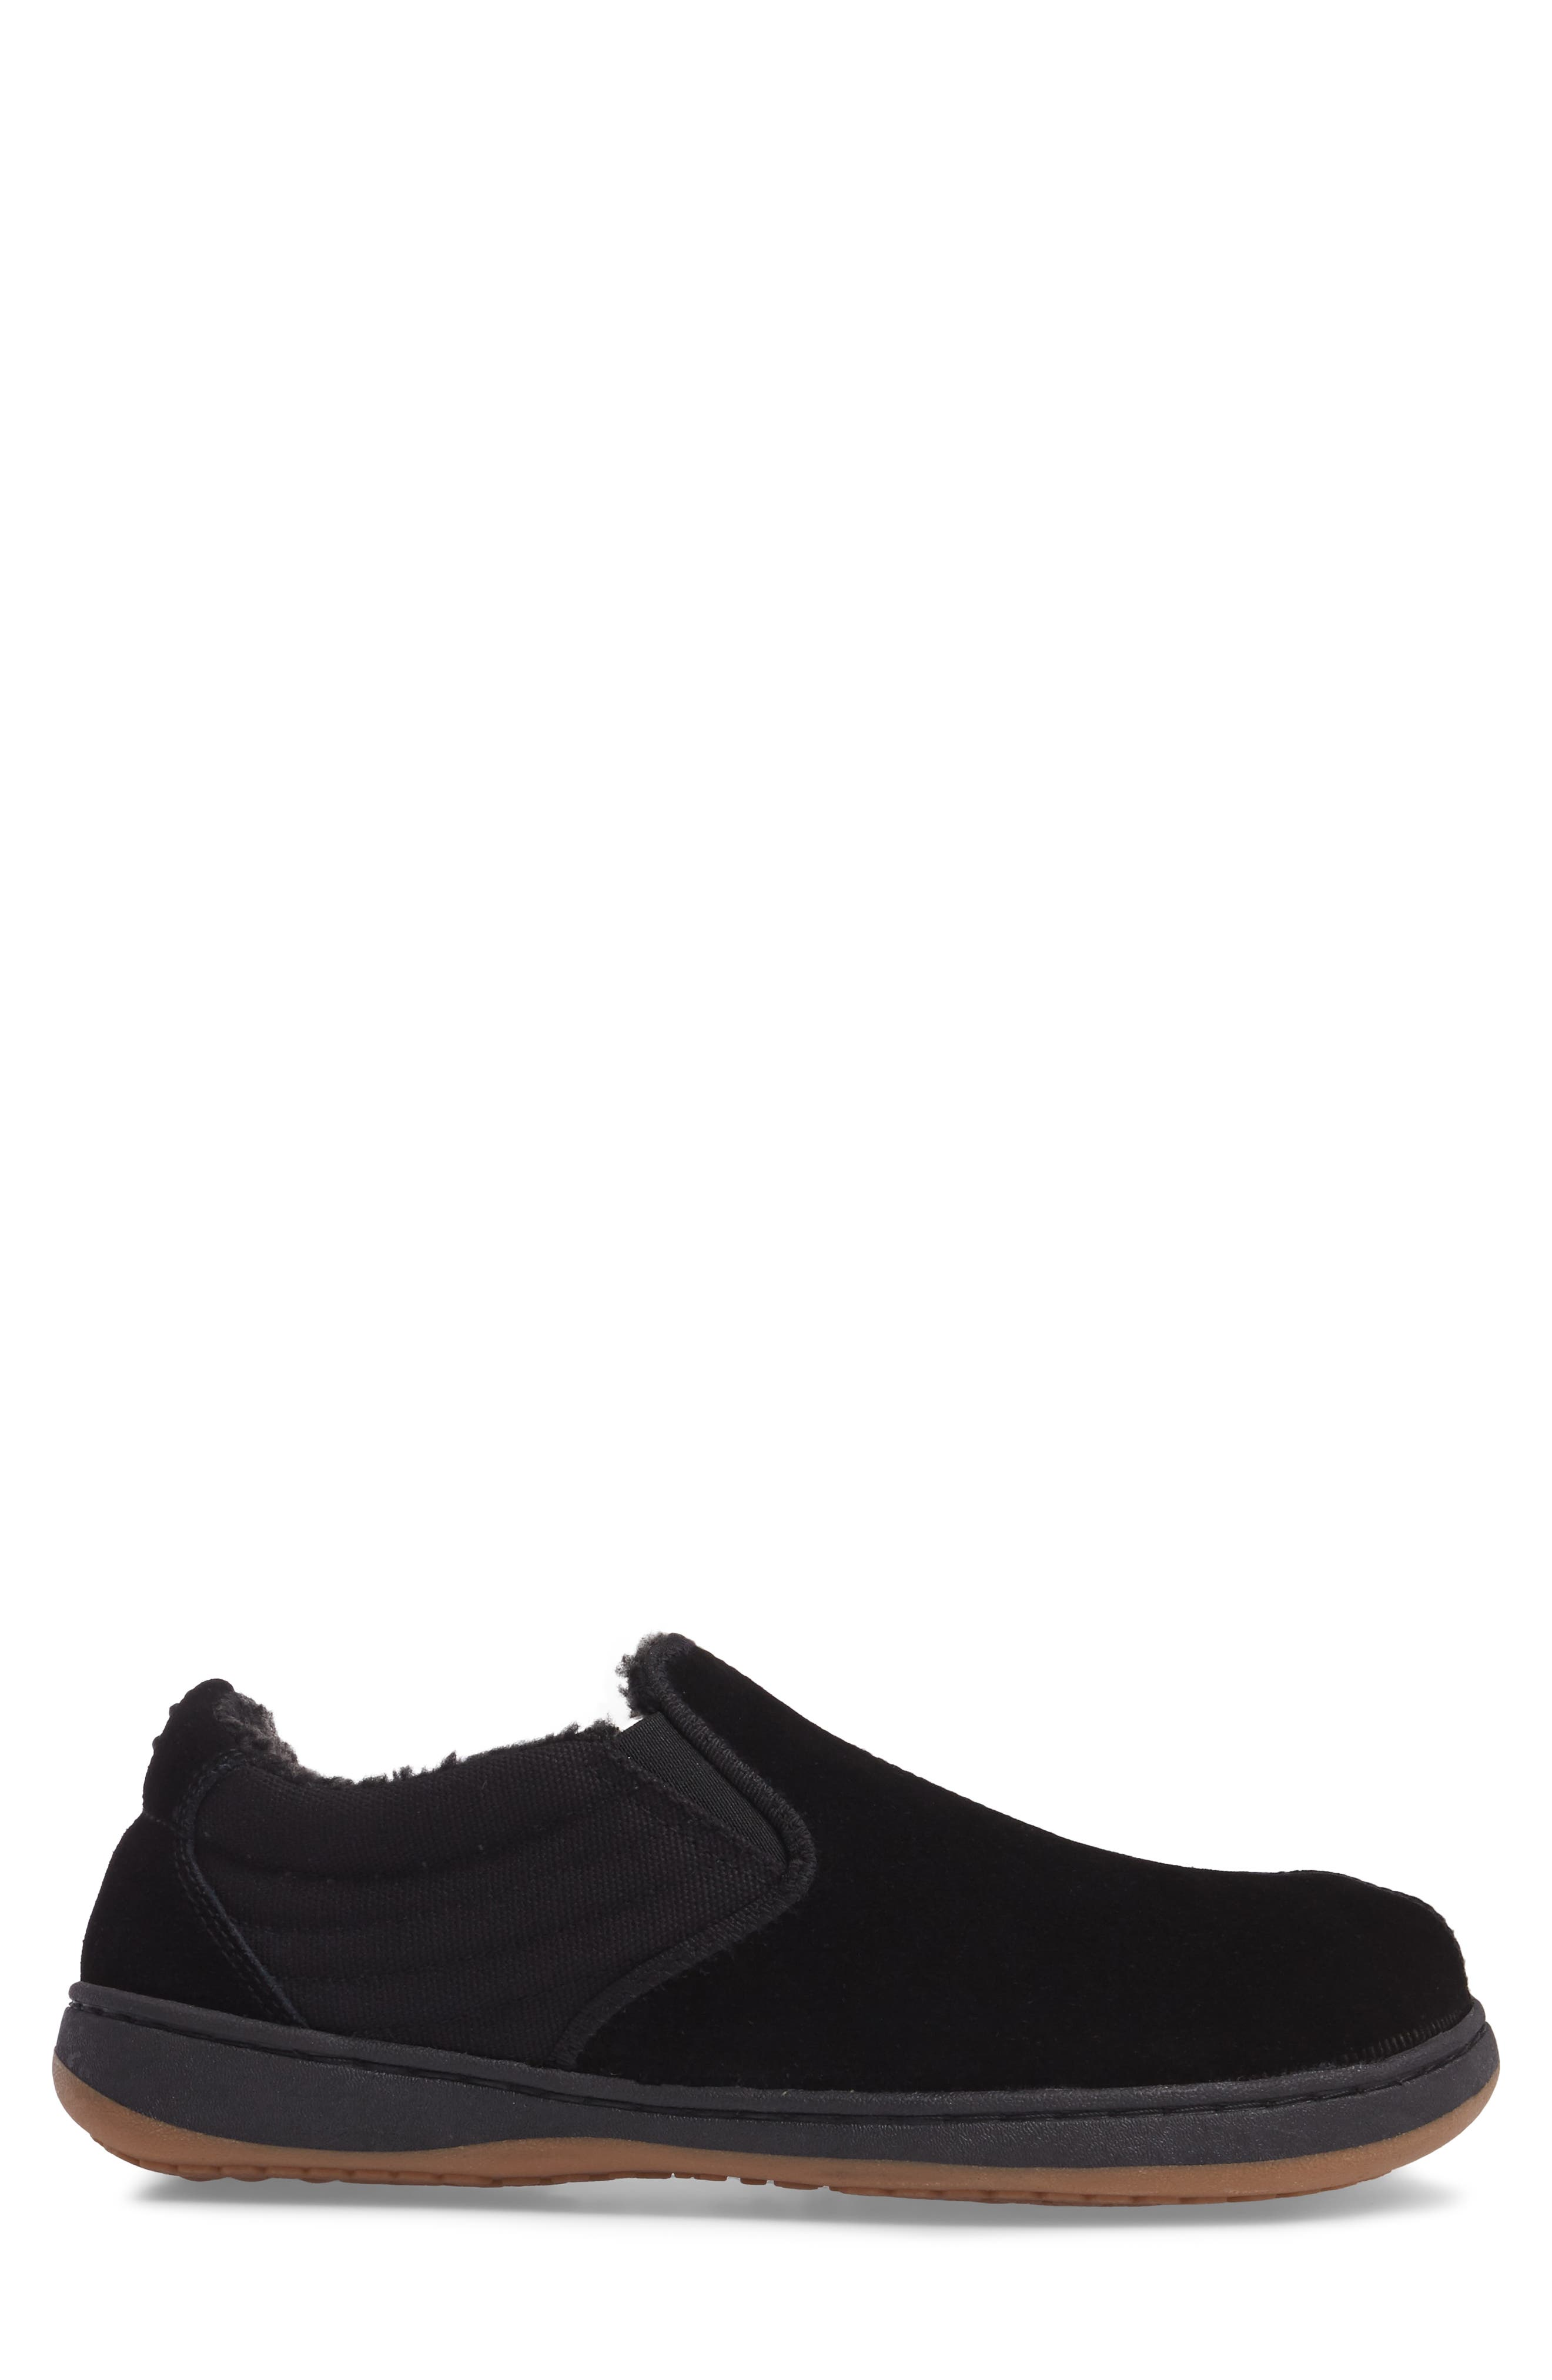 Alternate Image 3  - Tempur-Pedic Jadin Slipper (Men)